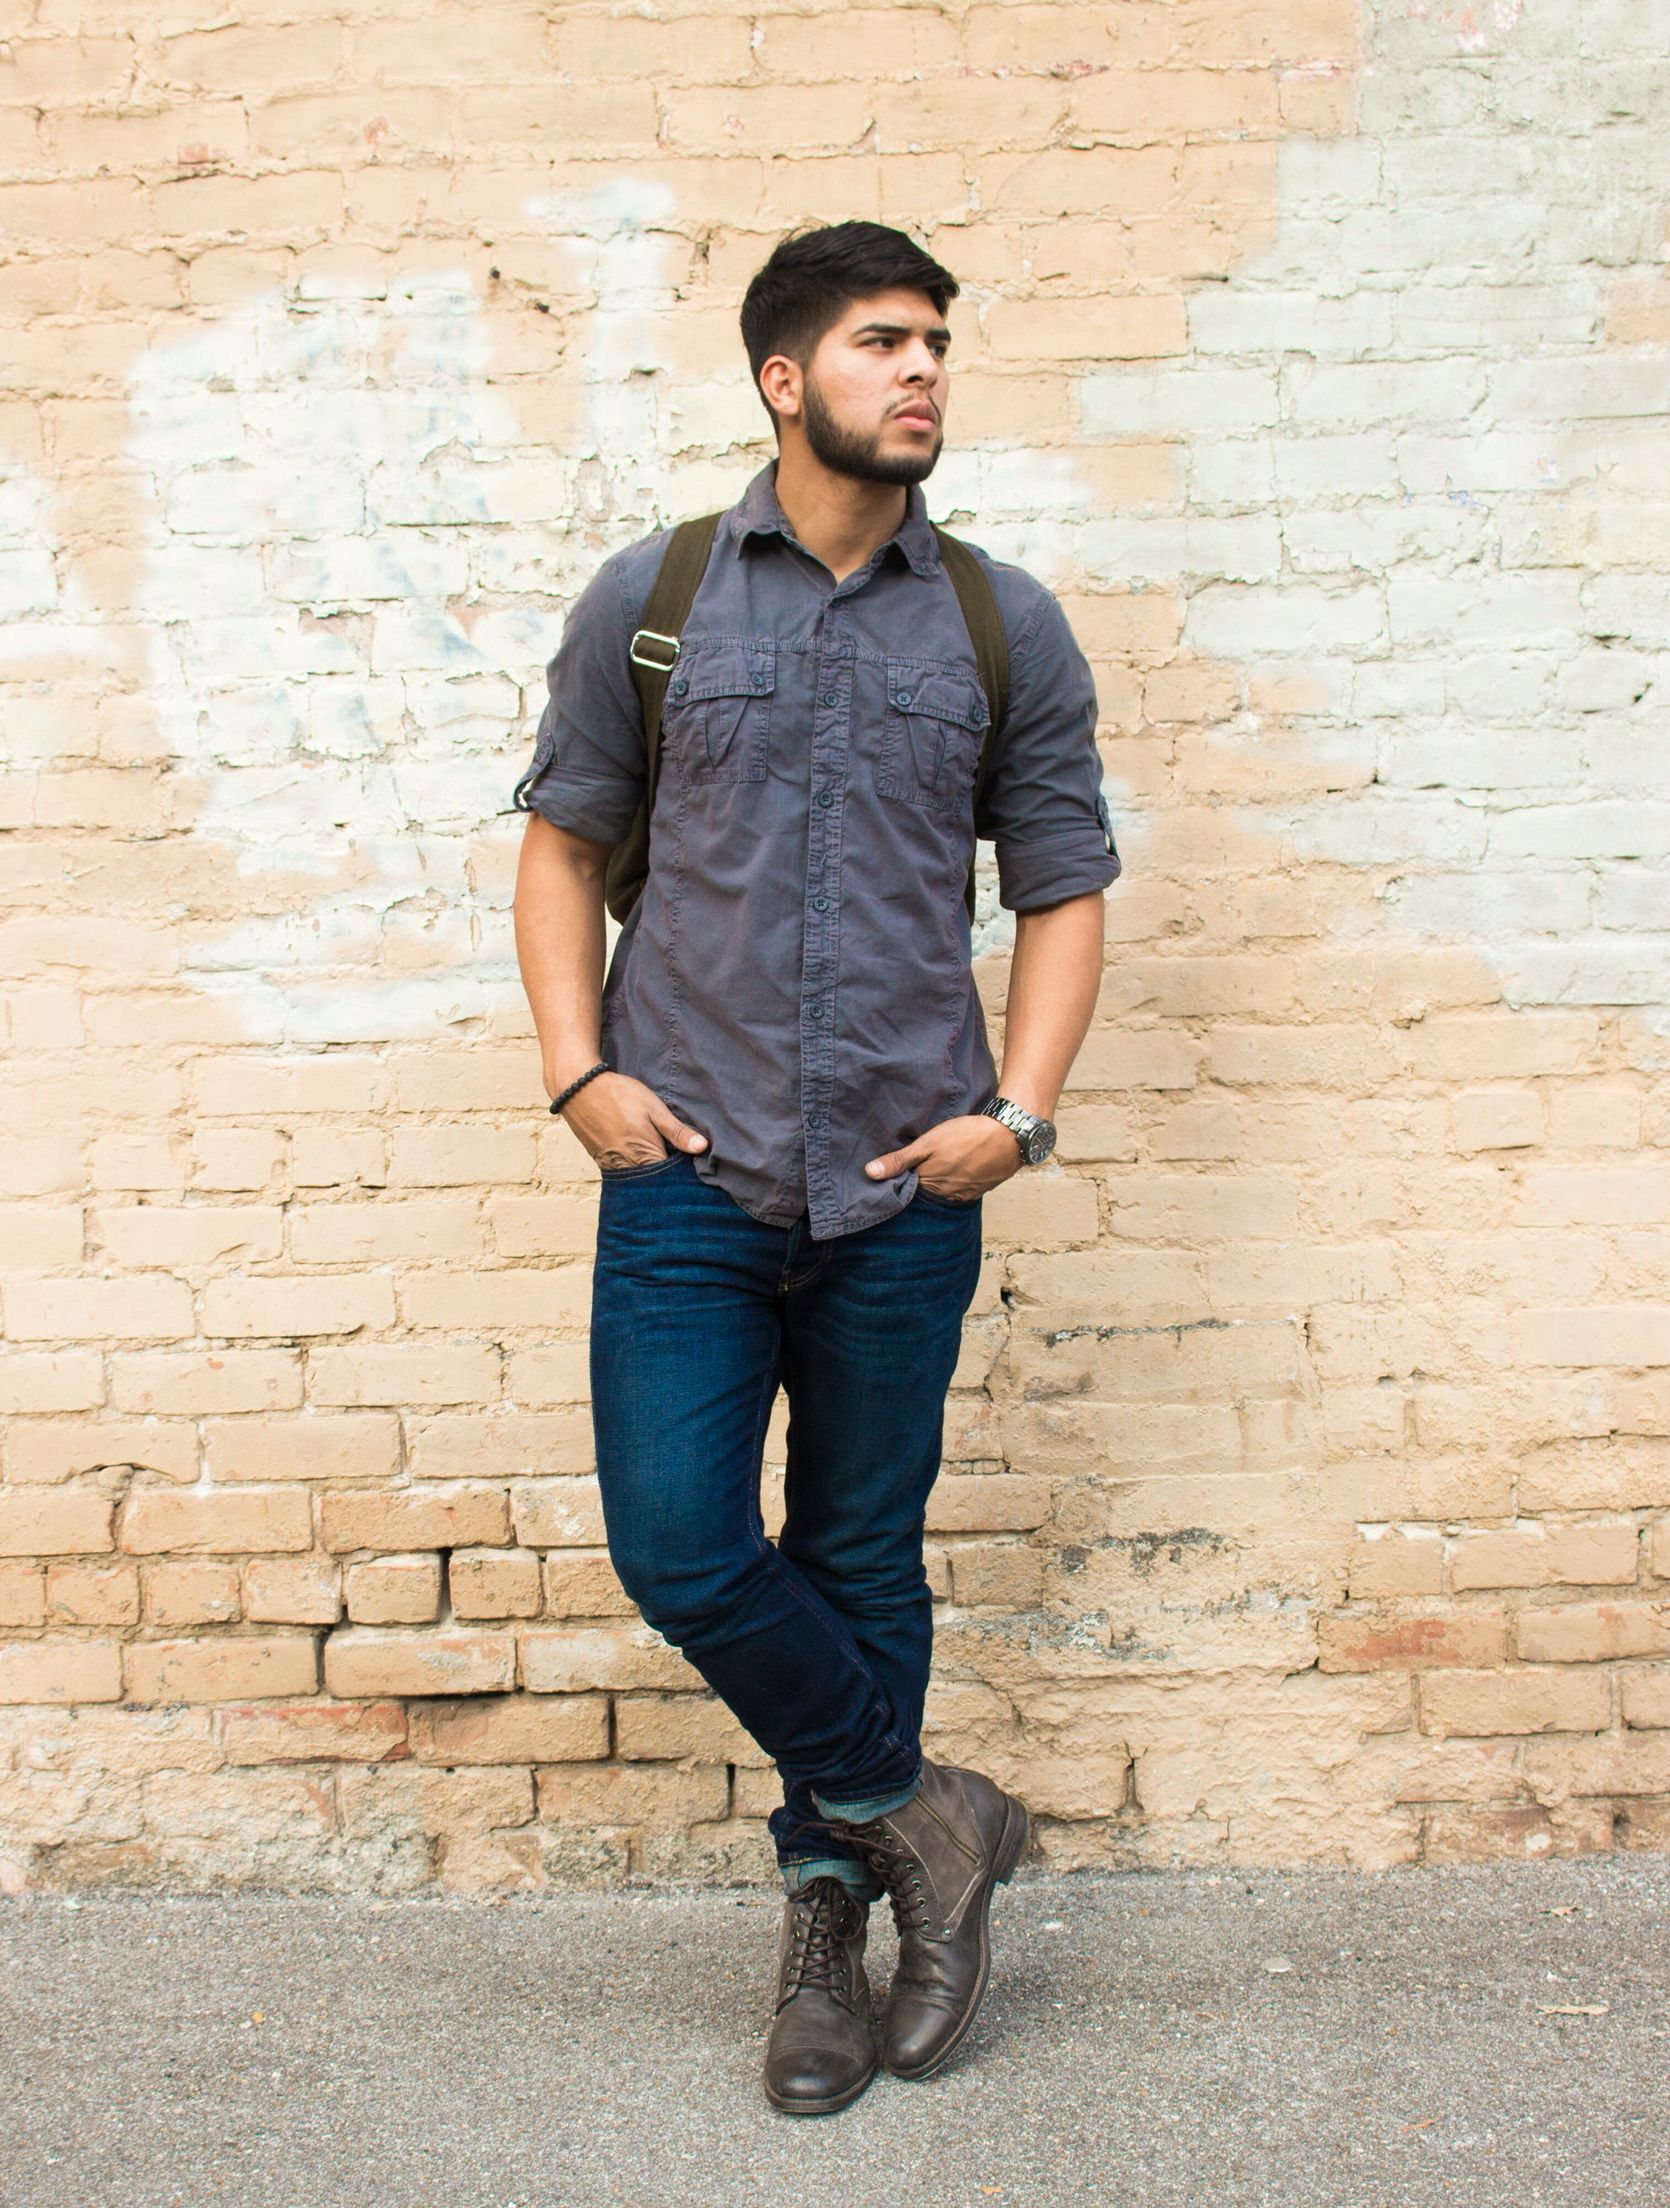 Mens casual outfit for urban